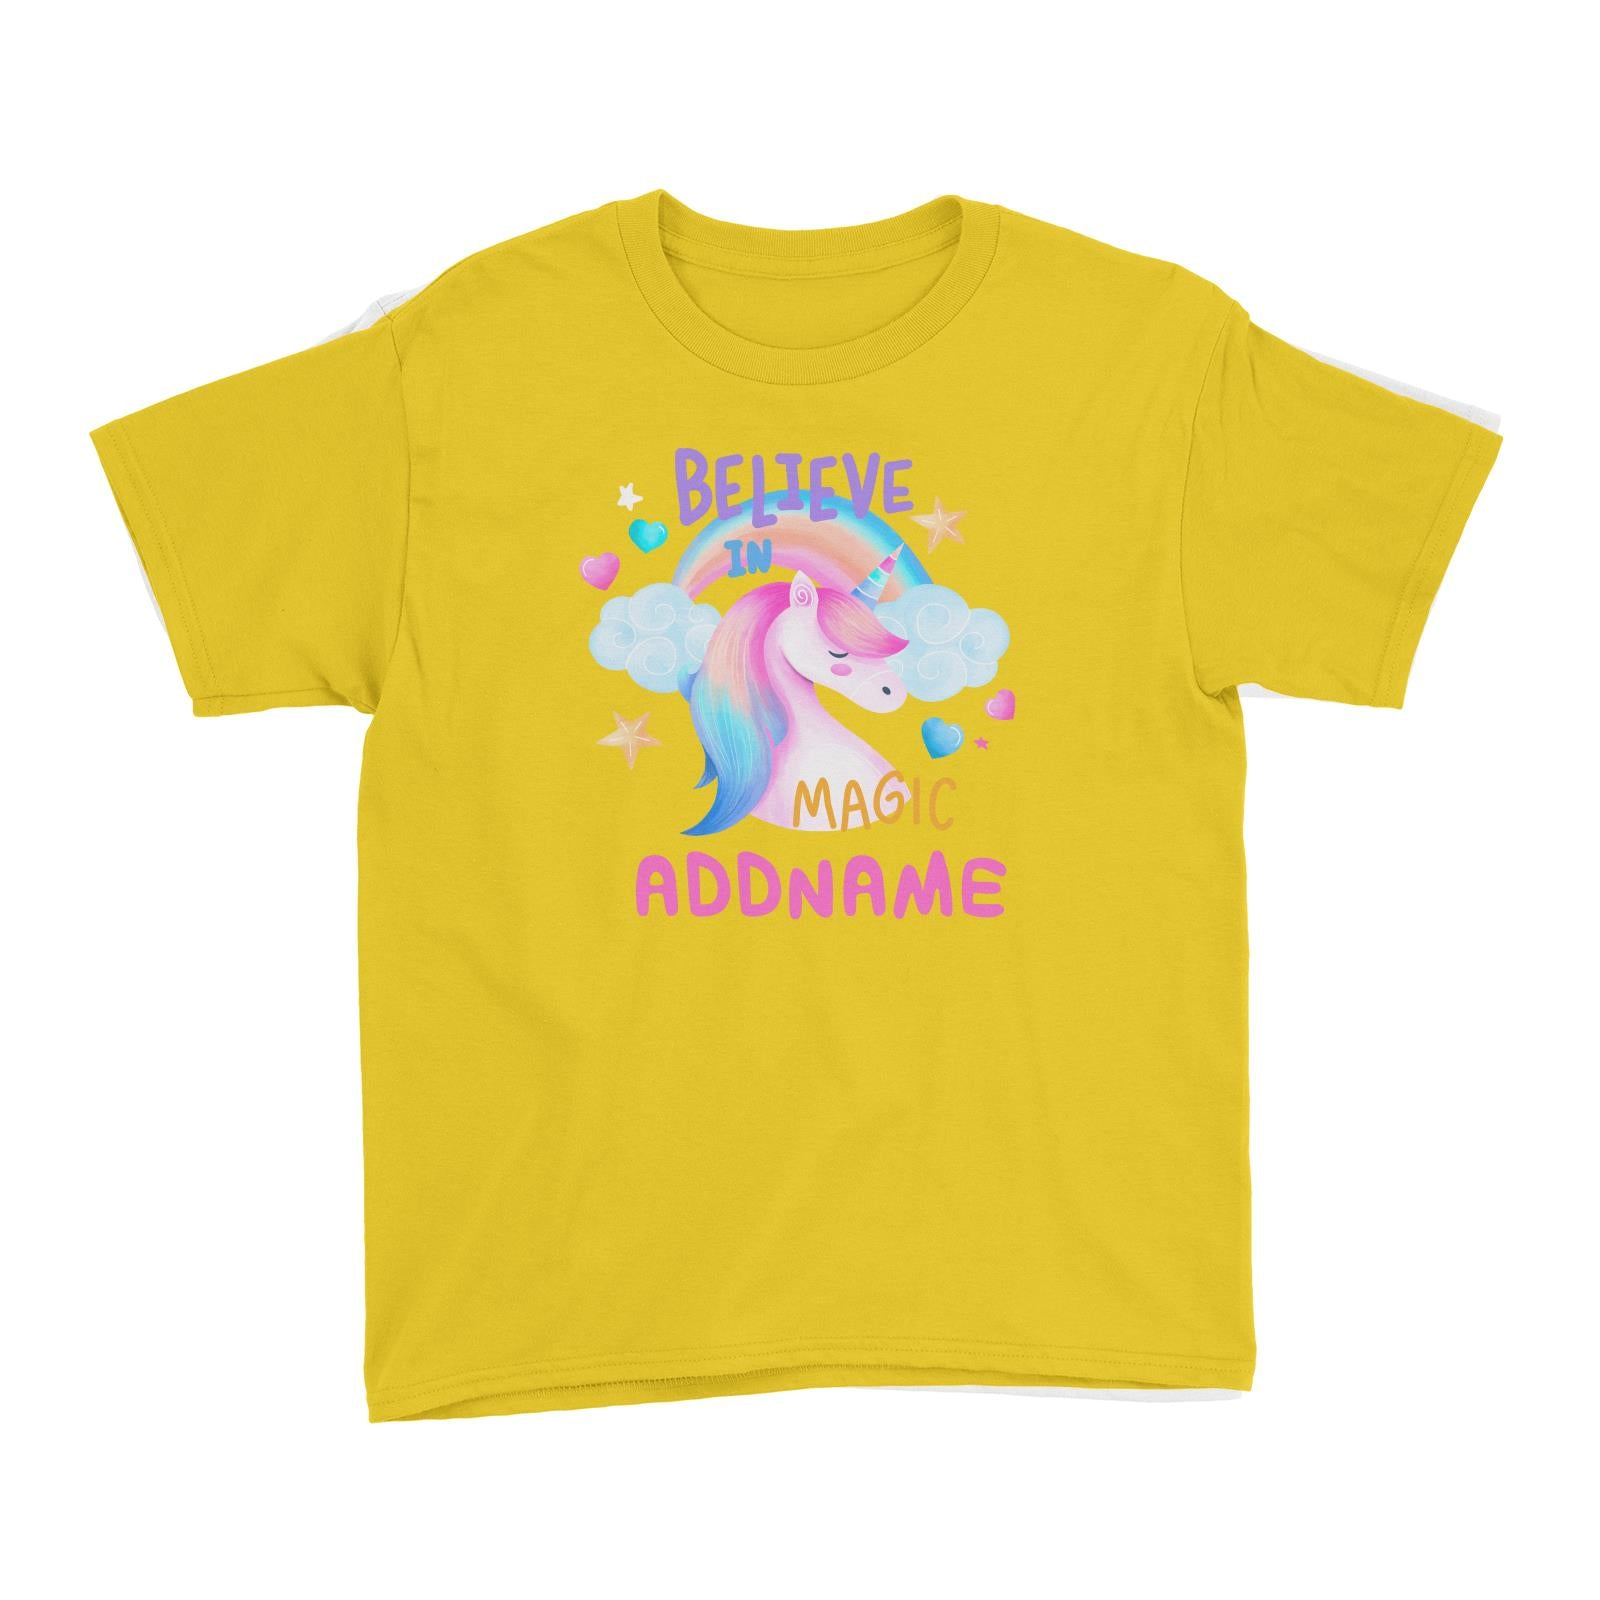 Children's Day Gift Series Believe In Magic Unicorn Addname Kid's T-Shirt